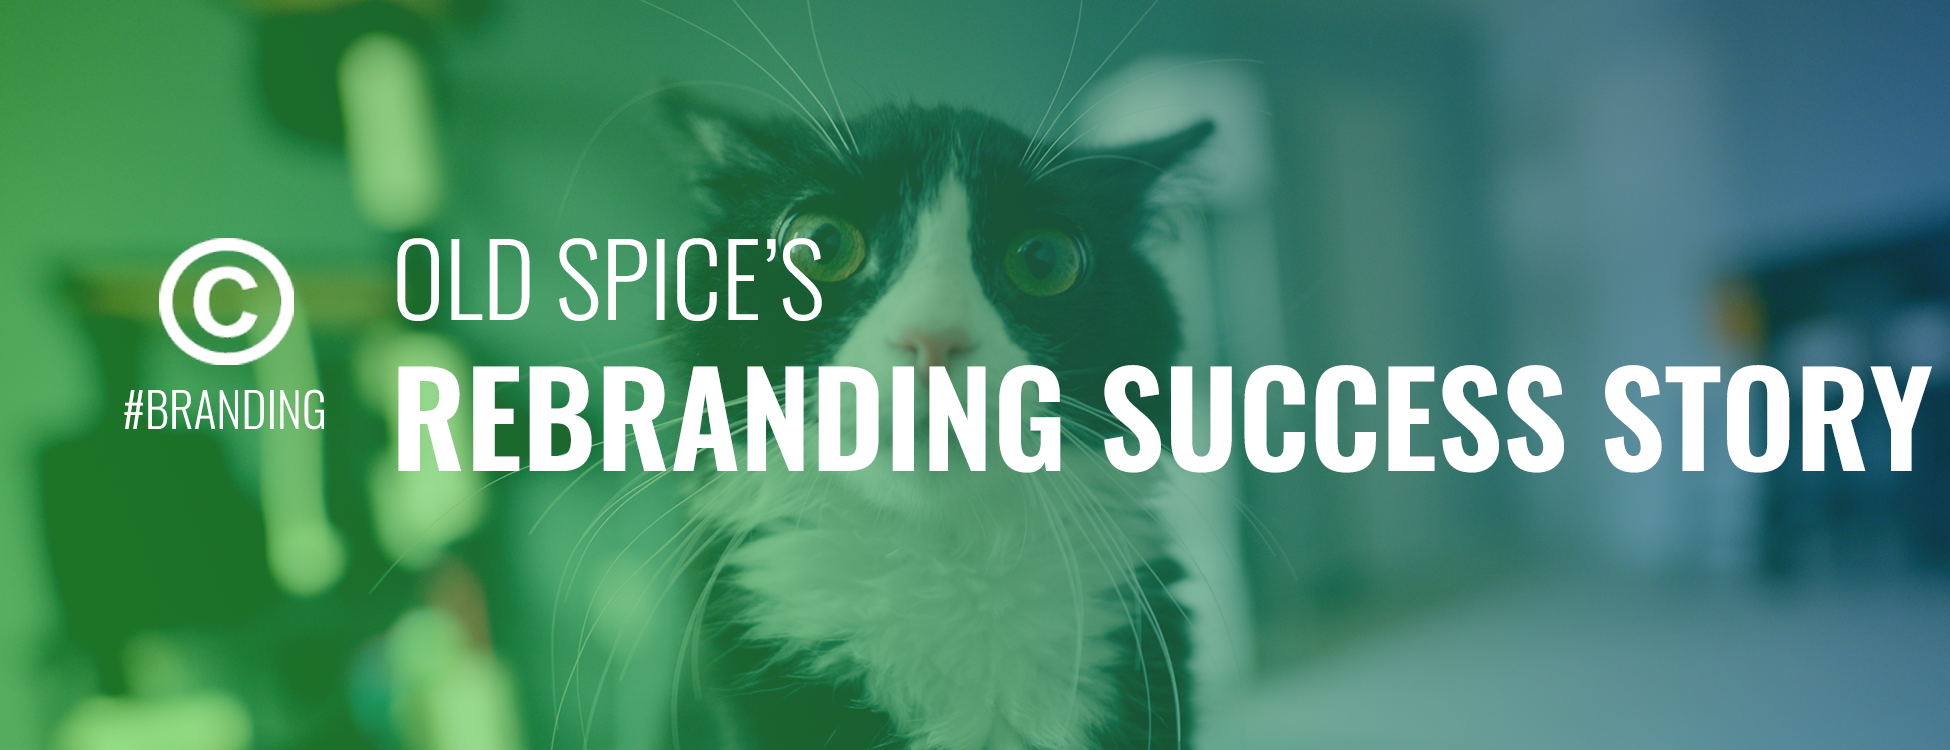 Old Spice-Rebranding-Success-Story-Insightrix-Research-Marketing